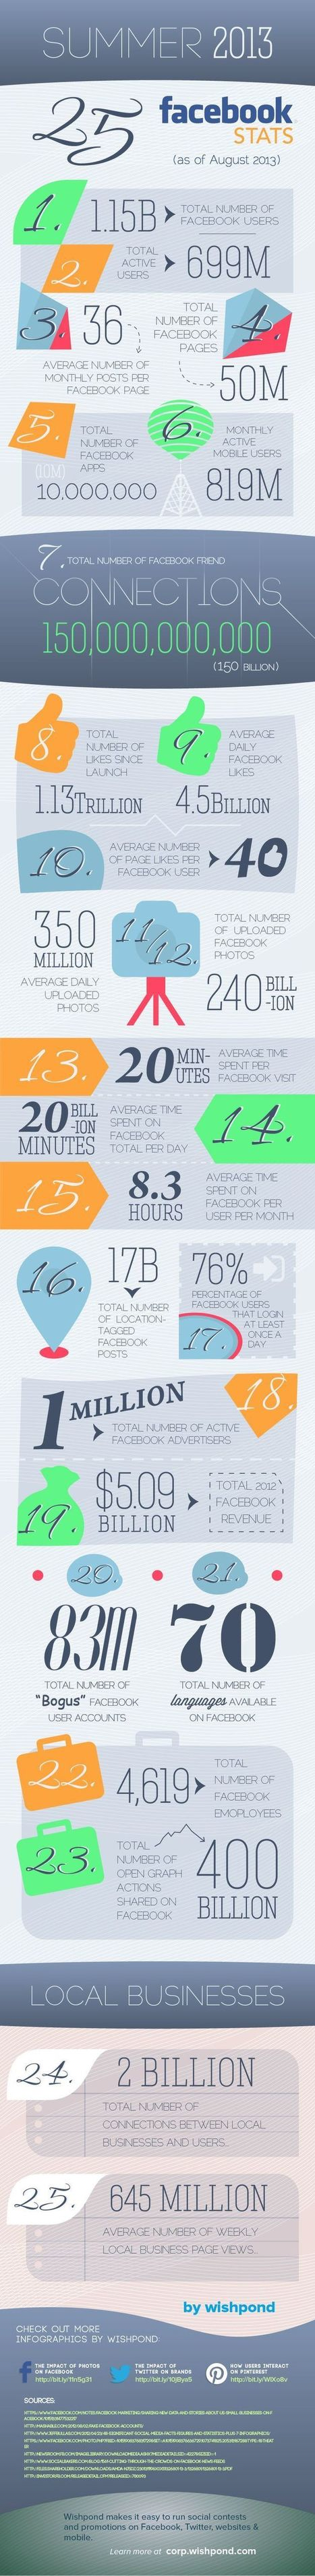 Keeping Up-To-Date With Facebook (Infographic) | MarketingHits | Scoop.it